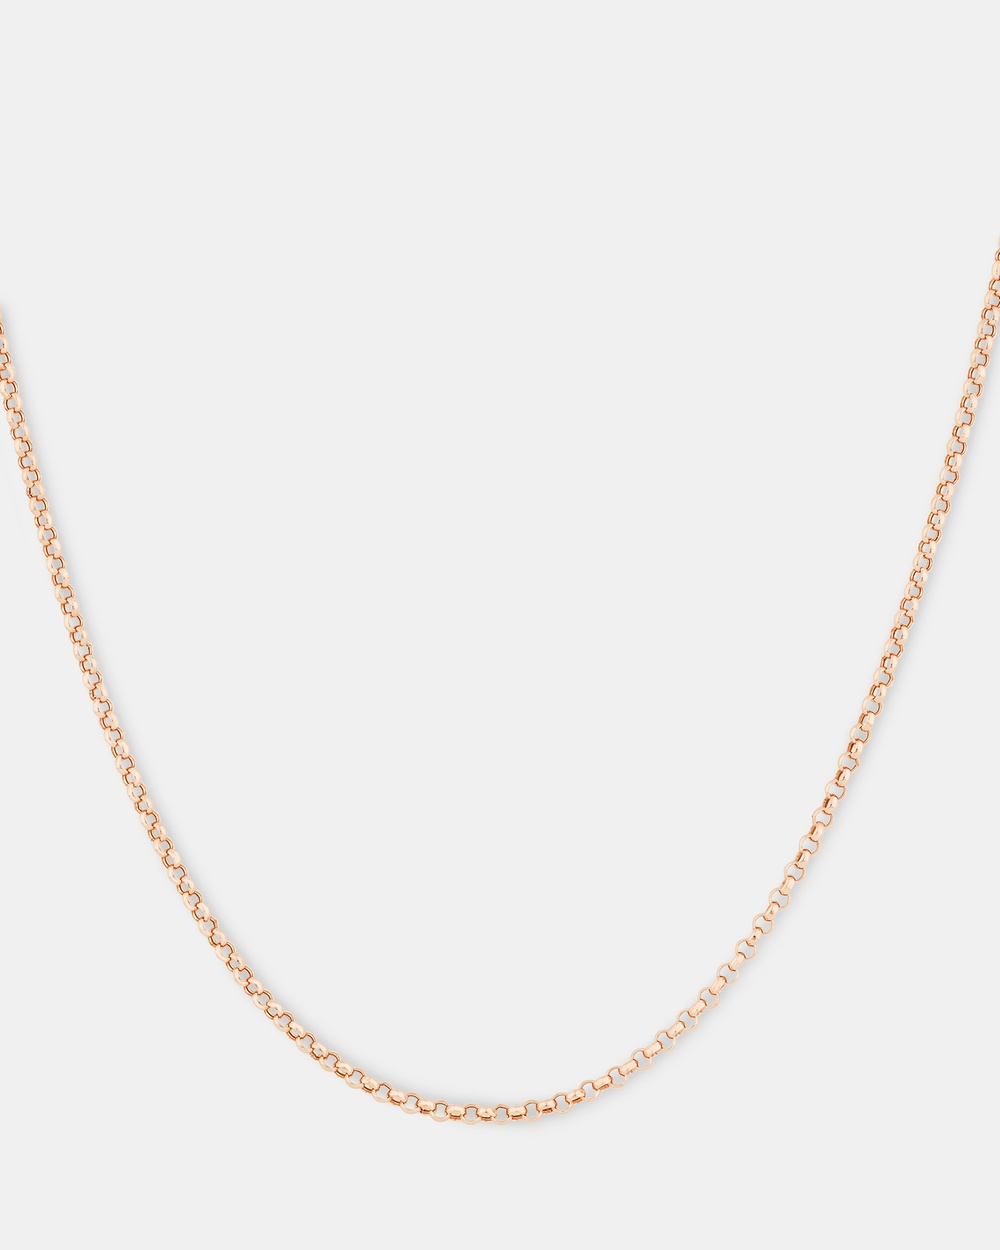 Michael Hill 50cm Hollow Belcher Chain in 10ct Rose Gold Jewellery Rose